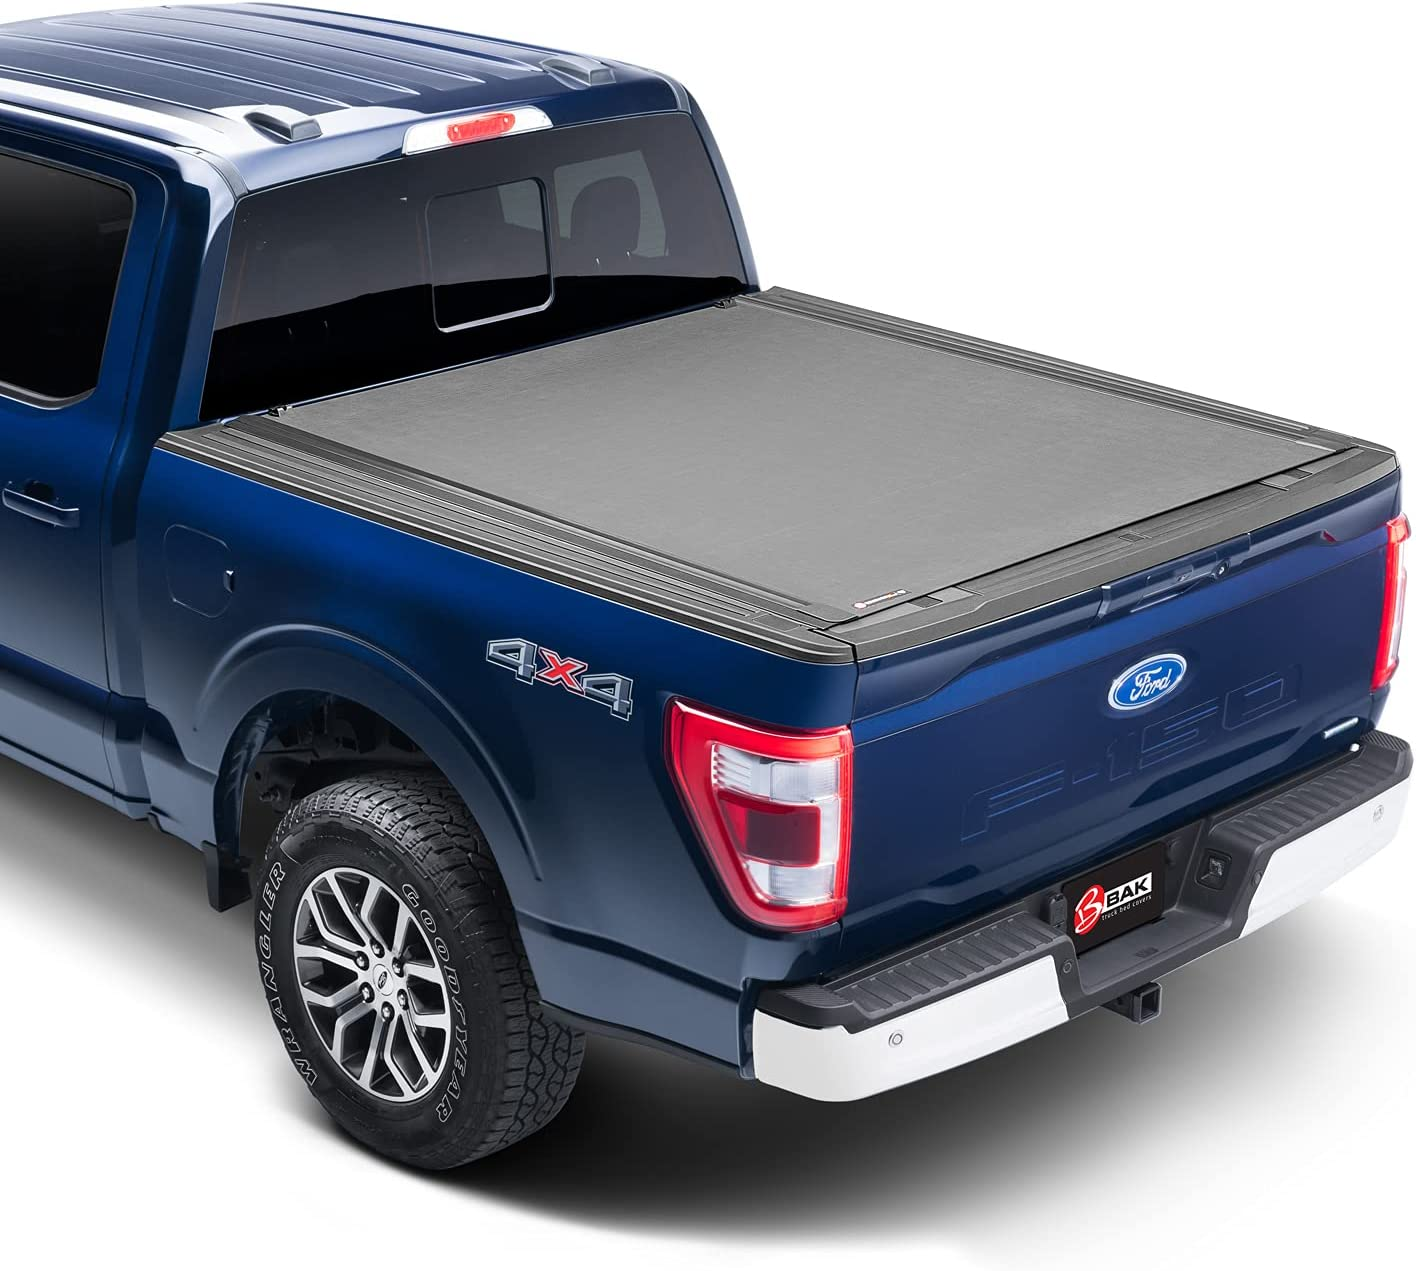 """BAK Revolver X4s Hard Rolling Truck Bed Tonneau Cover   80227RB   Fits 2019-2021 Dodge Ram 1500 with RamBox 5' 7"""" Bed"""